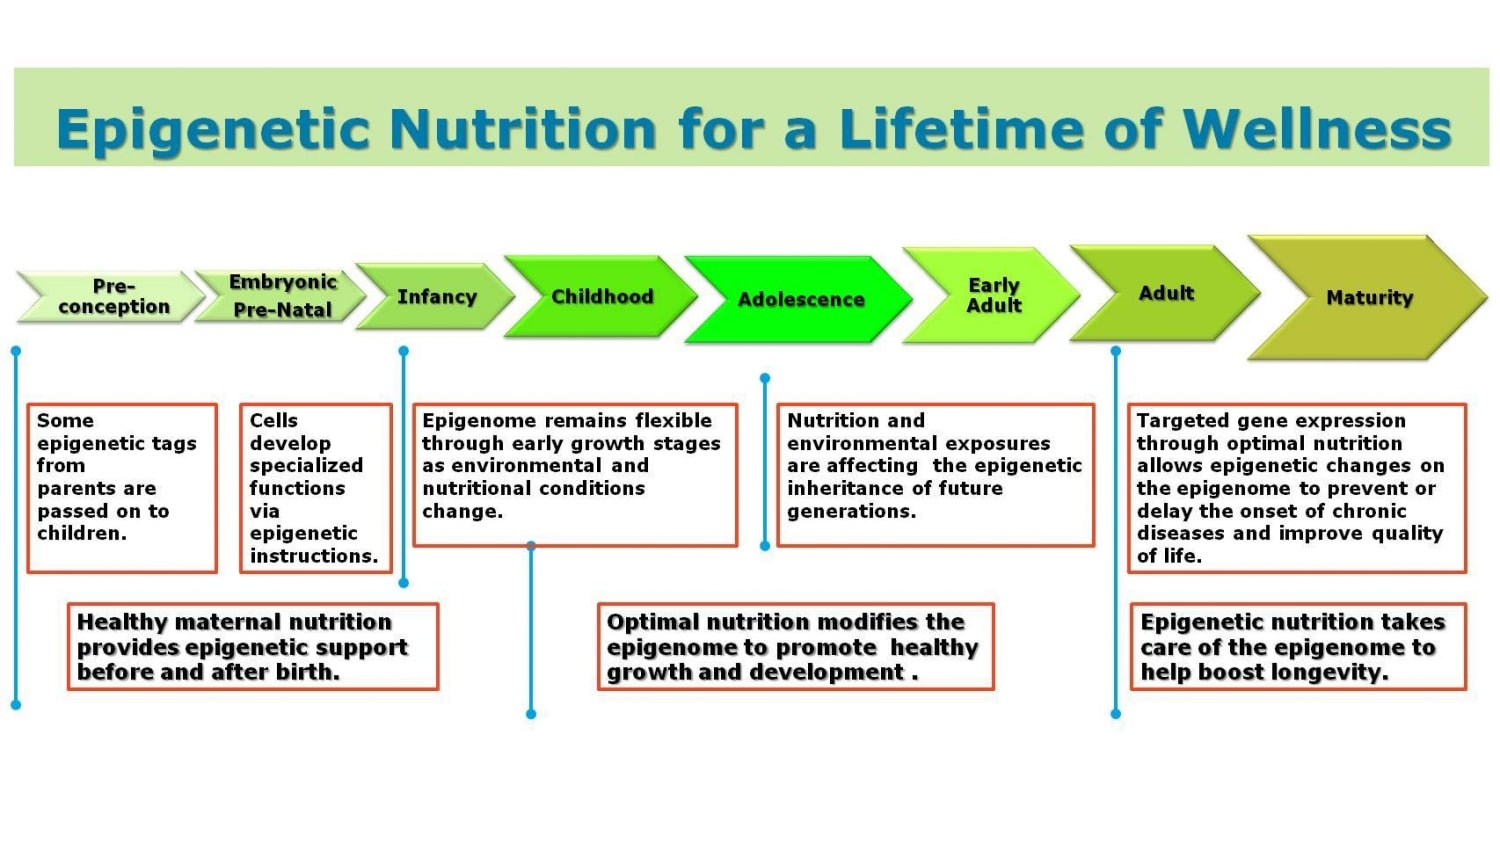 Epigenetic Nutrition for a Lifetime of Wellness Using Lunasin